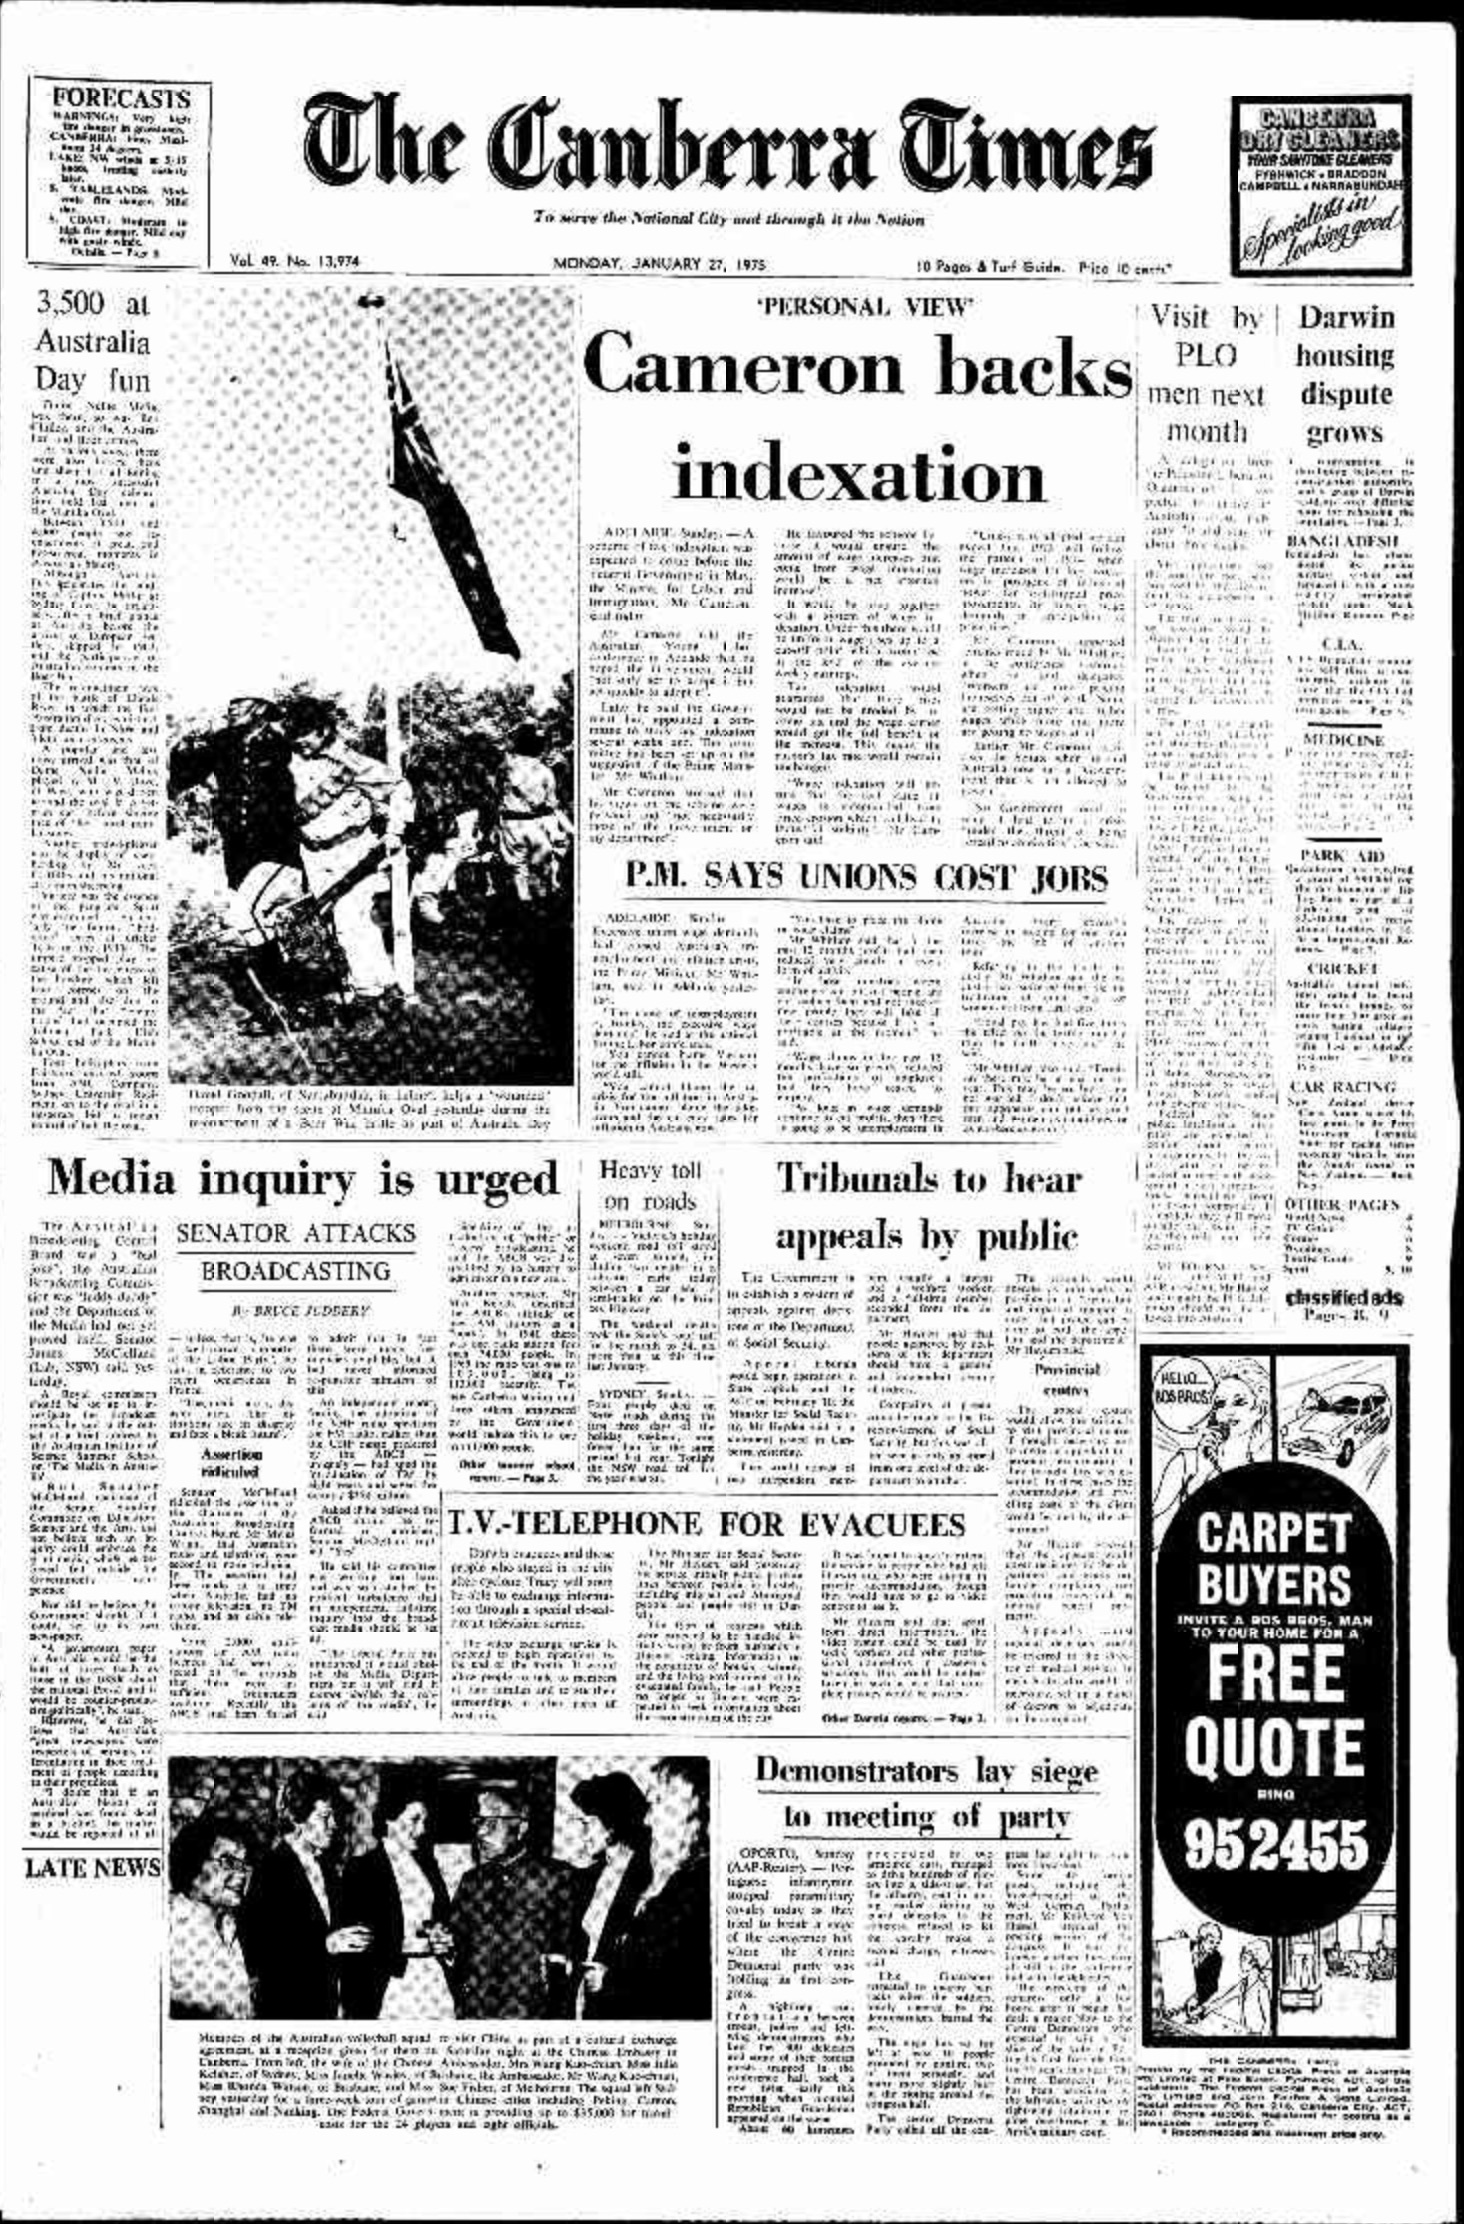 Canberra Times 1975 01 27 pg 1